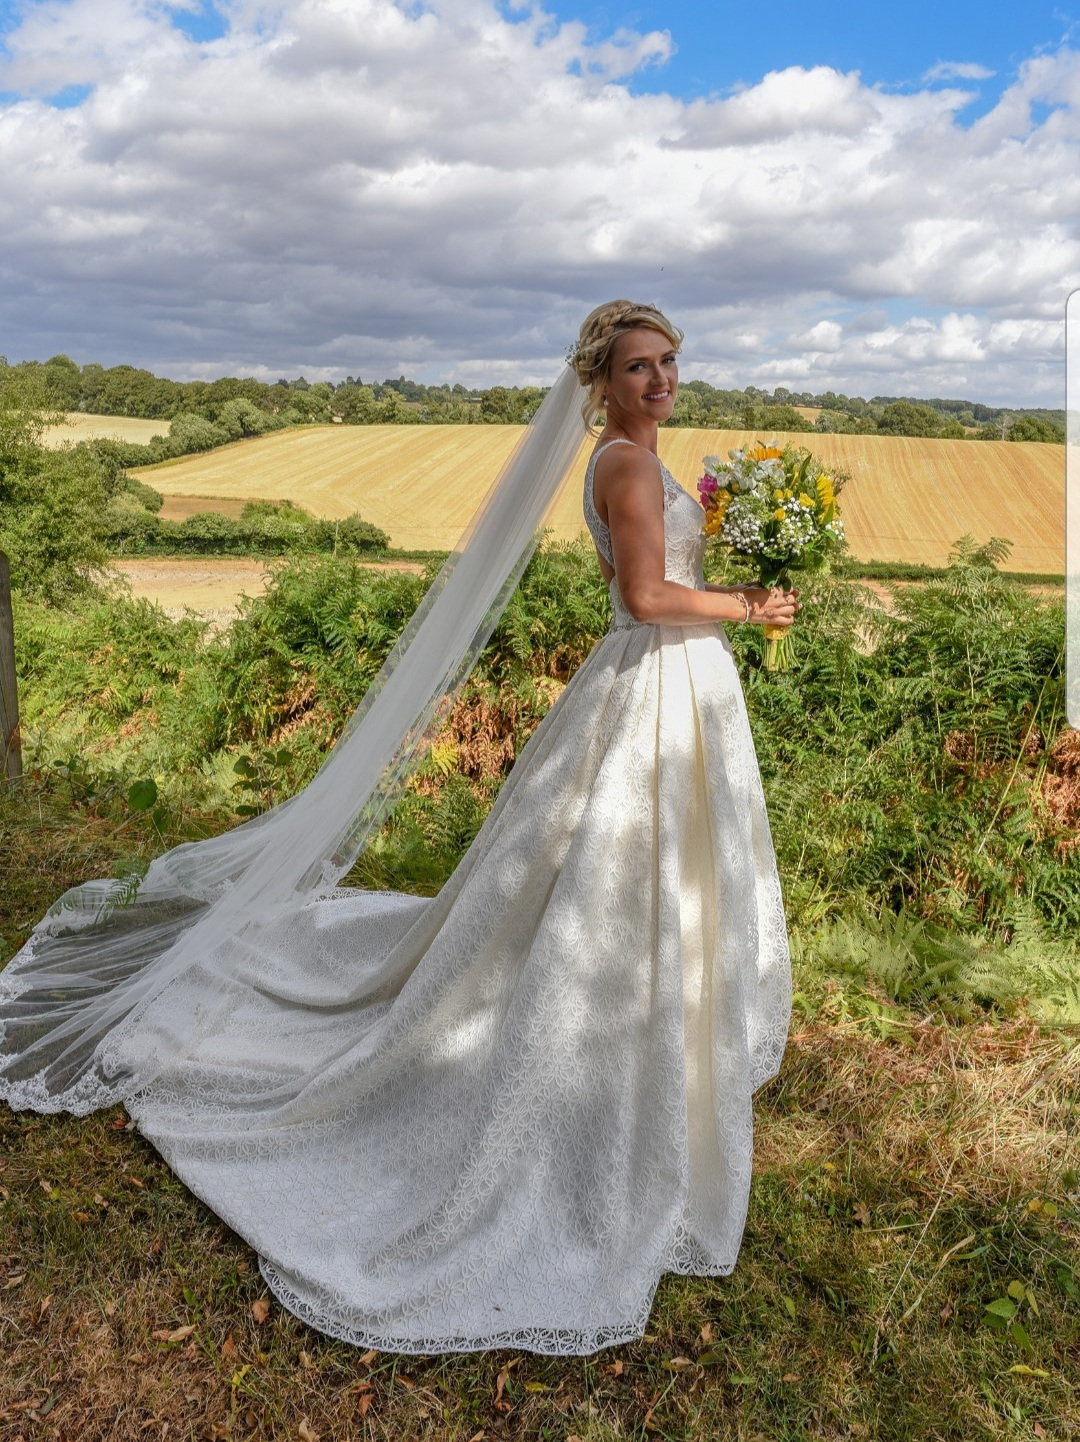 Bridal Shop, Bridal Boutique, Wedding dress, Wedding gown, Buckinghamshire, Great Missenden, Amersham, Beaconsfield, Wendover, Wedding Dress Shop, Brides